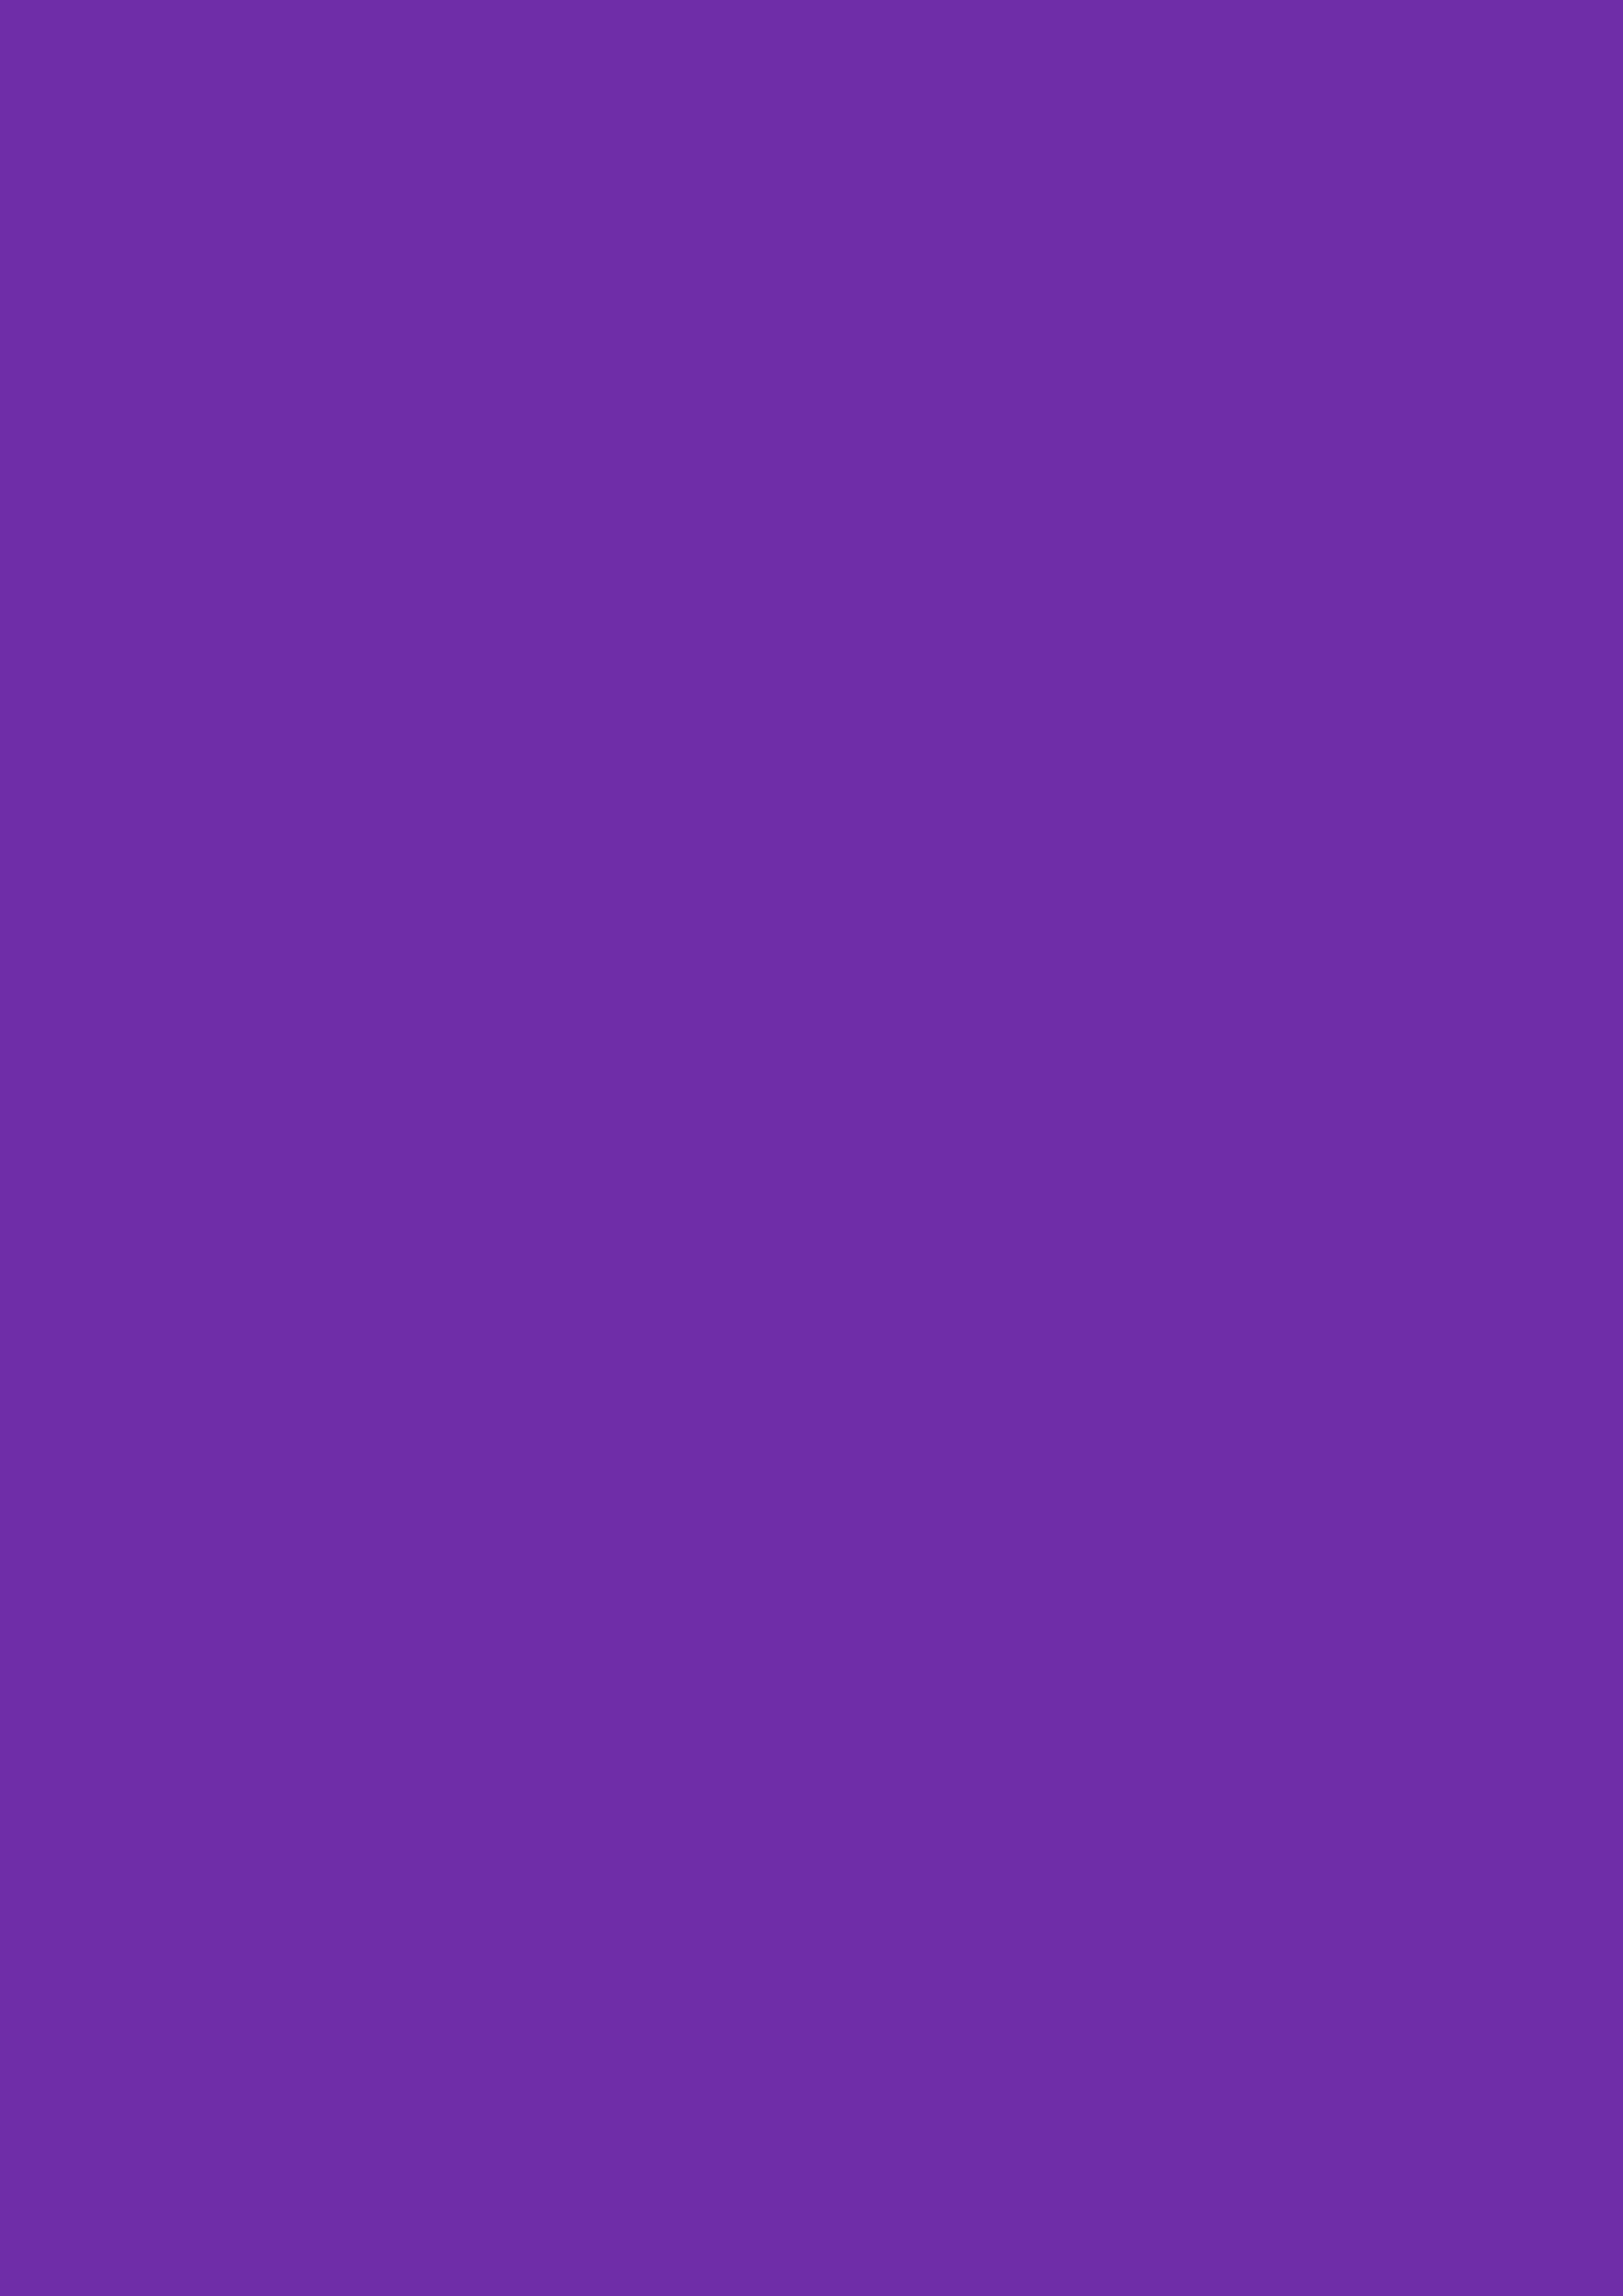 2480x3508 Grape Solid Color Background